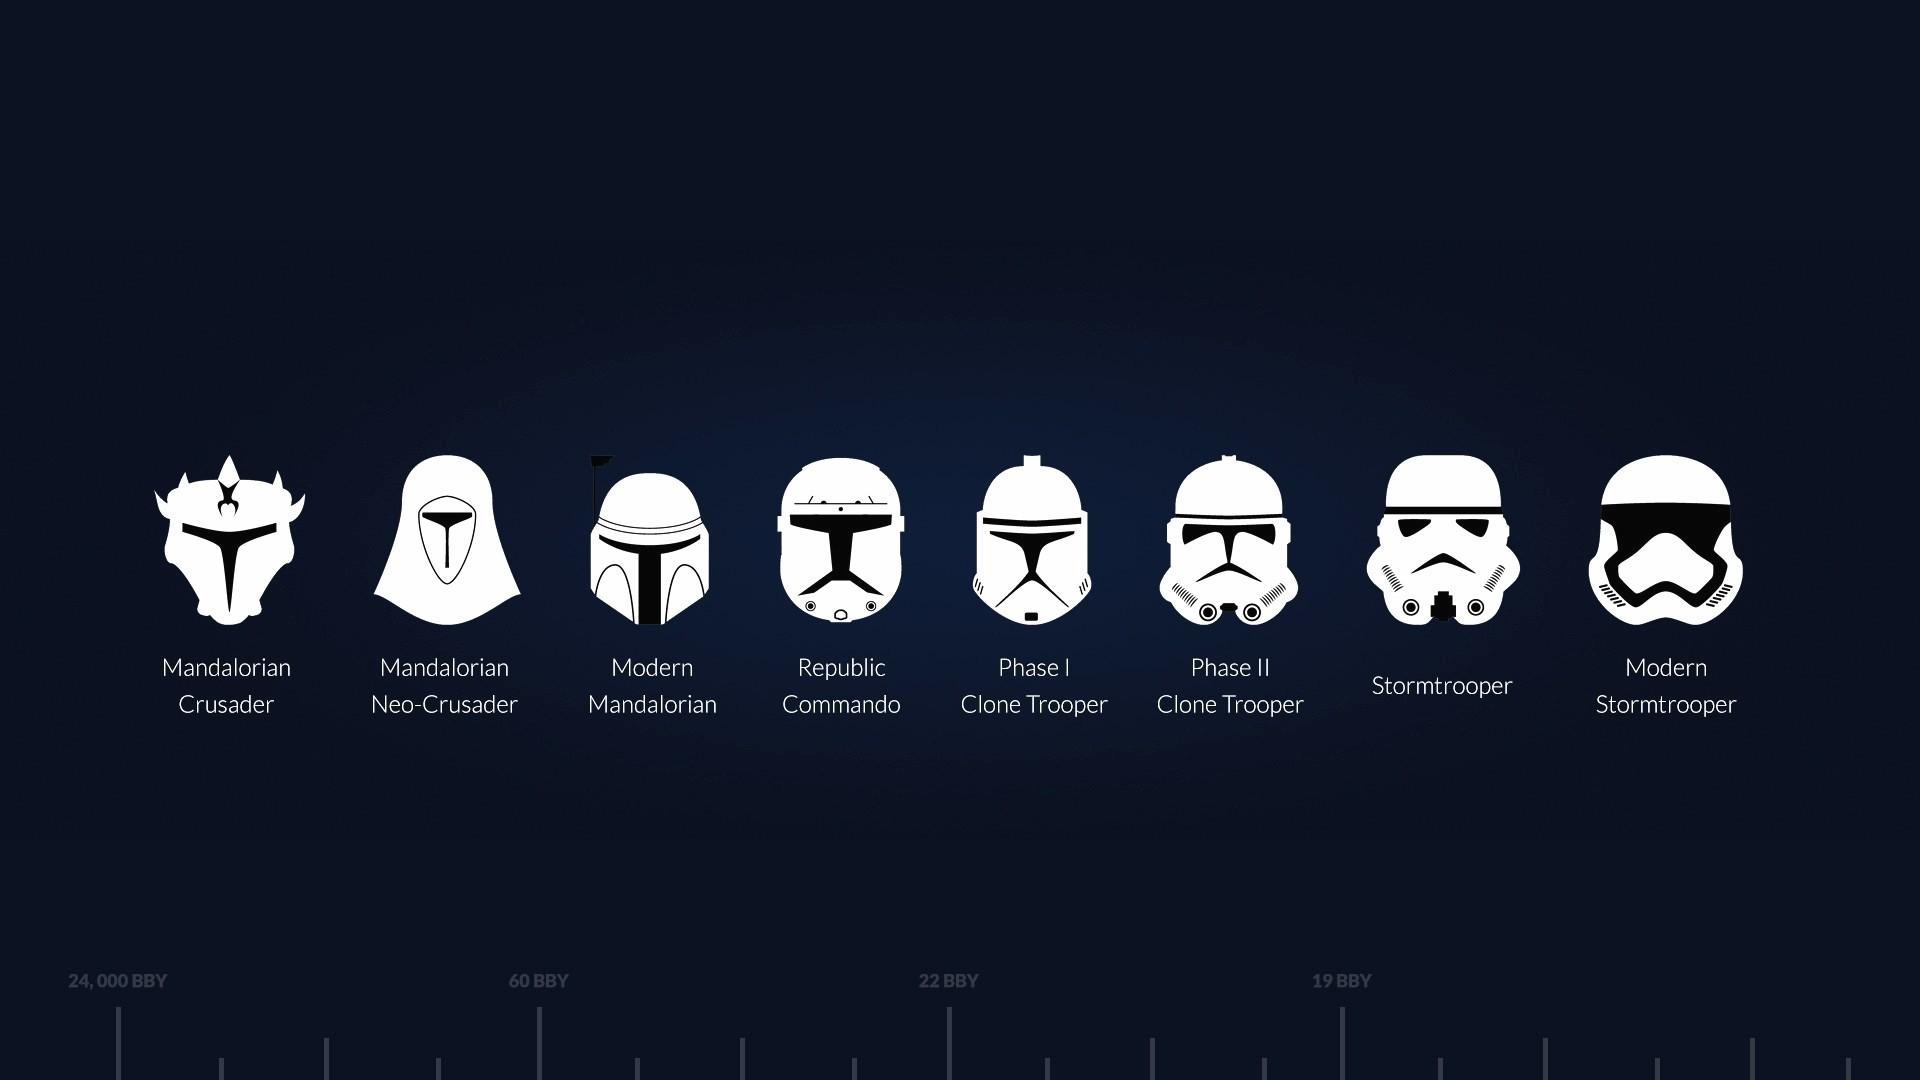 Cool Stormtrooper Wallpaper Posted By Christopher Mercado